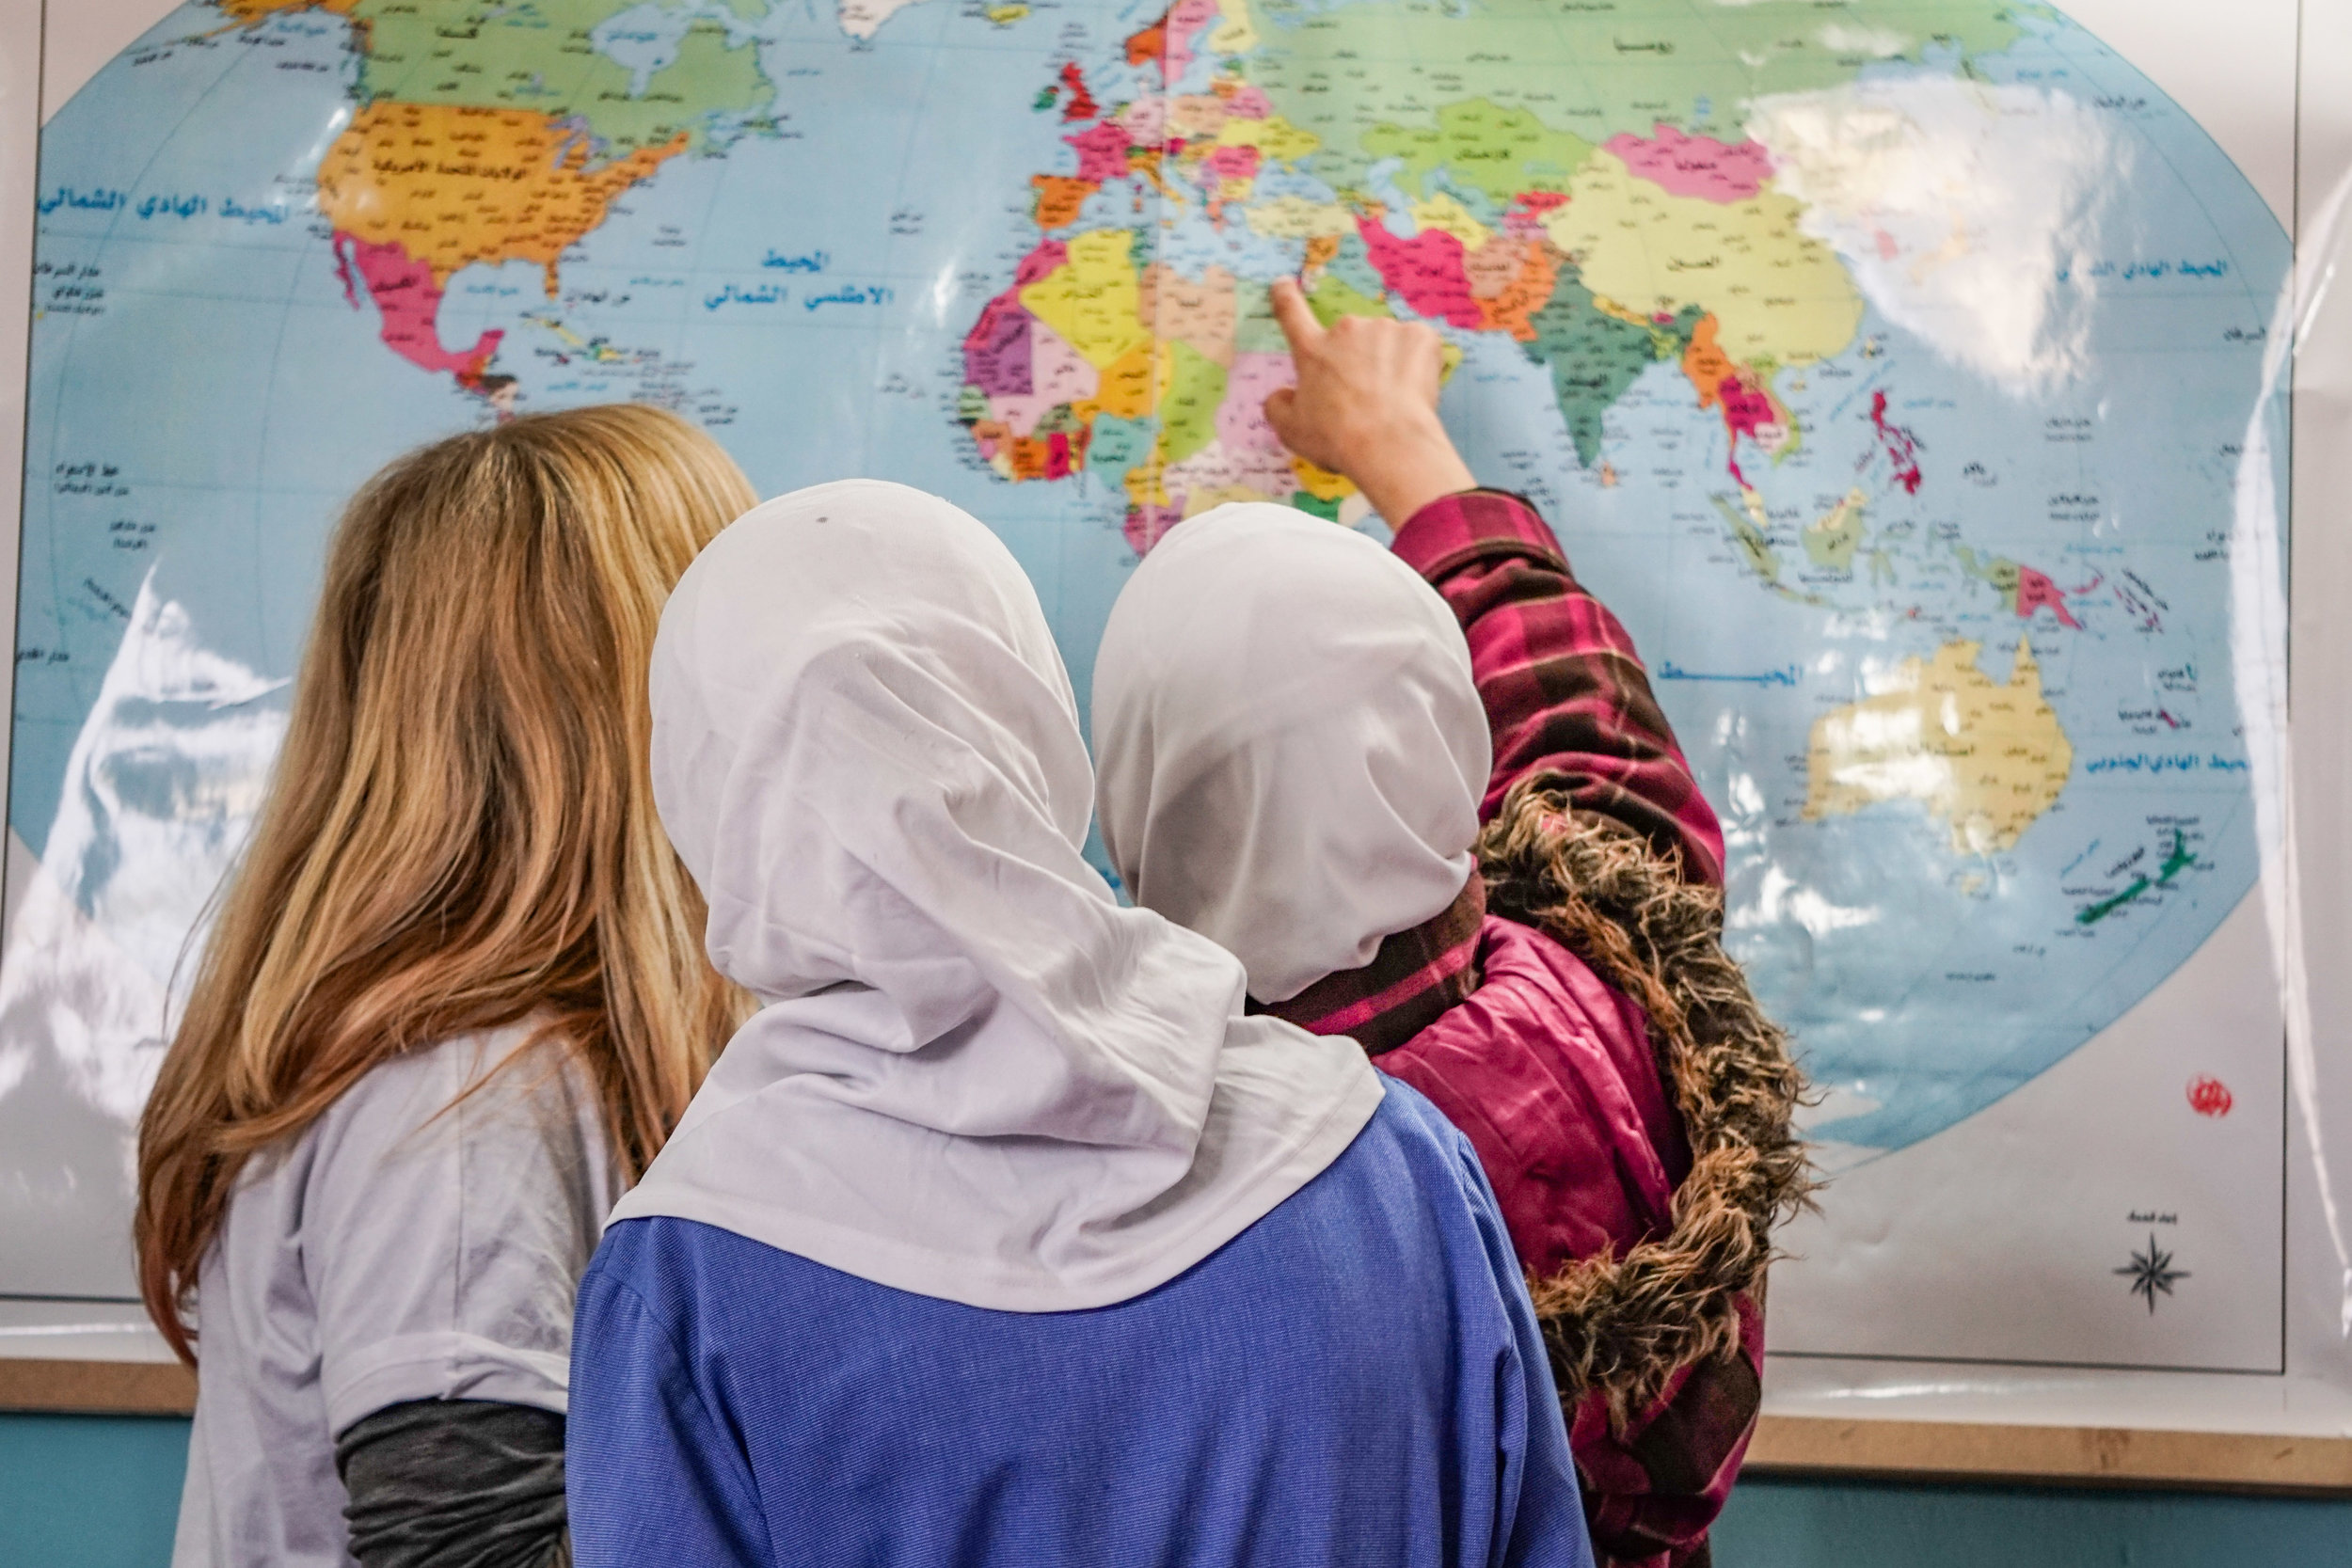 REMEDIAL EDUCATION - The primary goal of The Azraq Center is to get Syrian refugee children back into the classroom and to promote their successful integration and academic success in the Jordanian Public School System when possible. We focus on the core academic subjects of Arabic, Math, Science and English, aligning as closely as possible with the Jordanian curriculum and the pacing at the local South Azraq Public School. Close collaboration with administrators at the public school helps to identify academic and behavioral challenges and tailor our efforts to improve them.